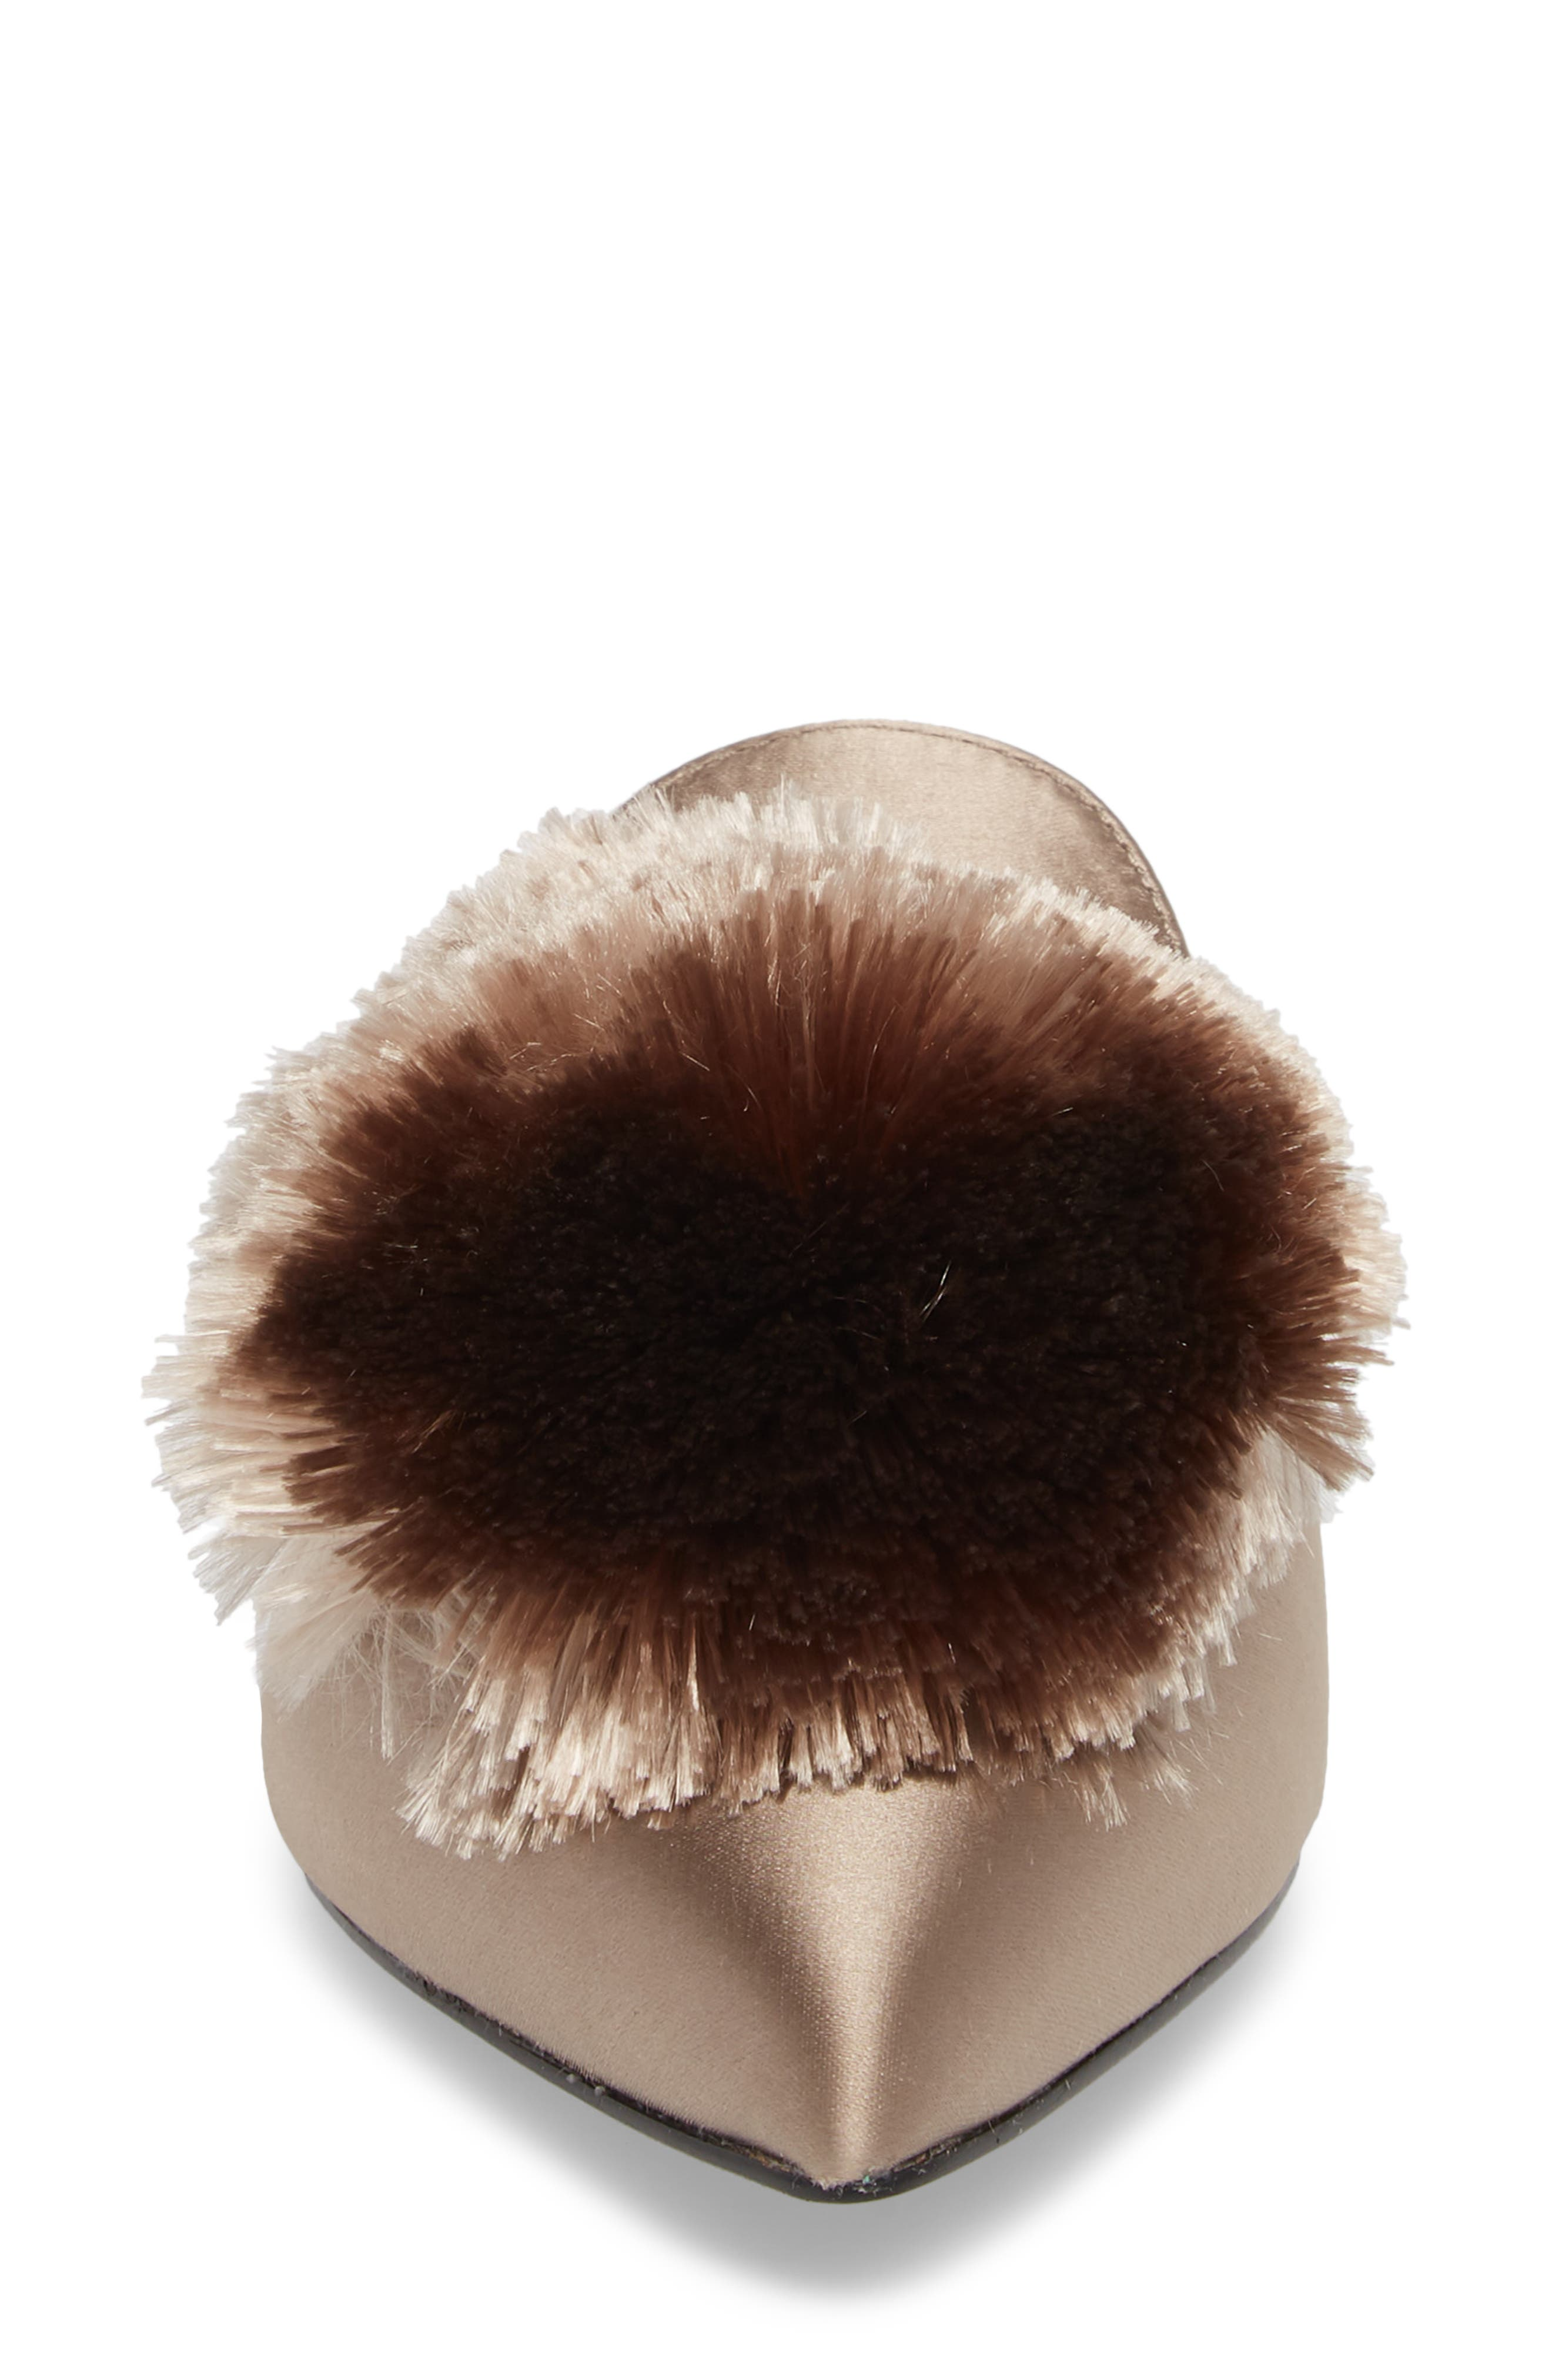 Wella Pompom Loafer Mule,                             Alternate thumbnail 4, color,                             TAUPE SATIN